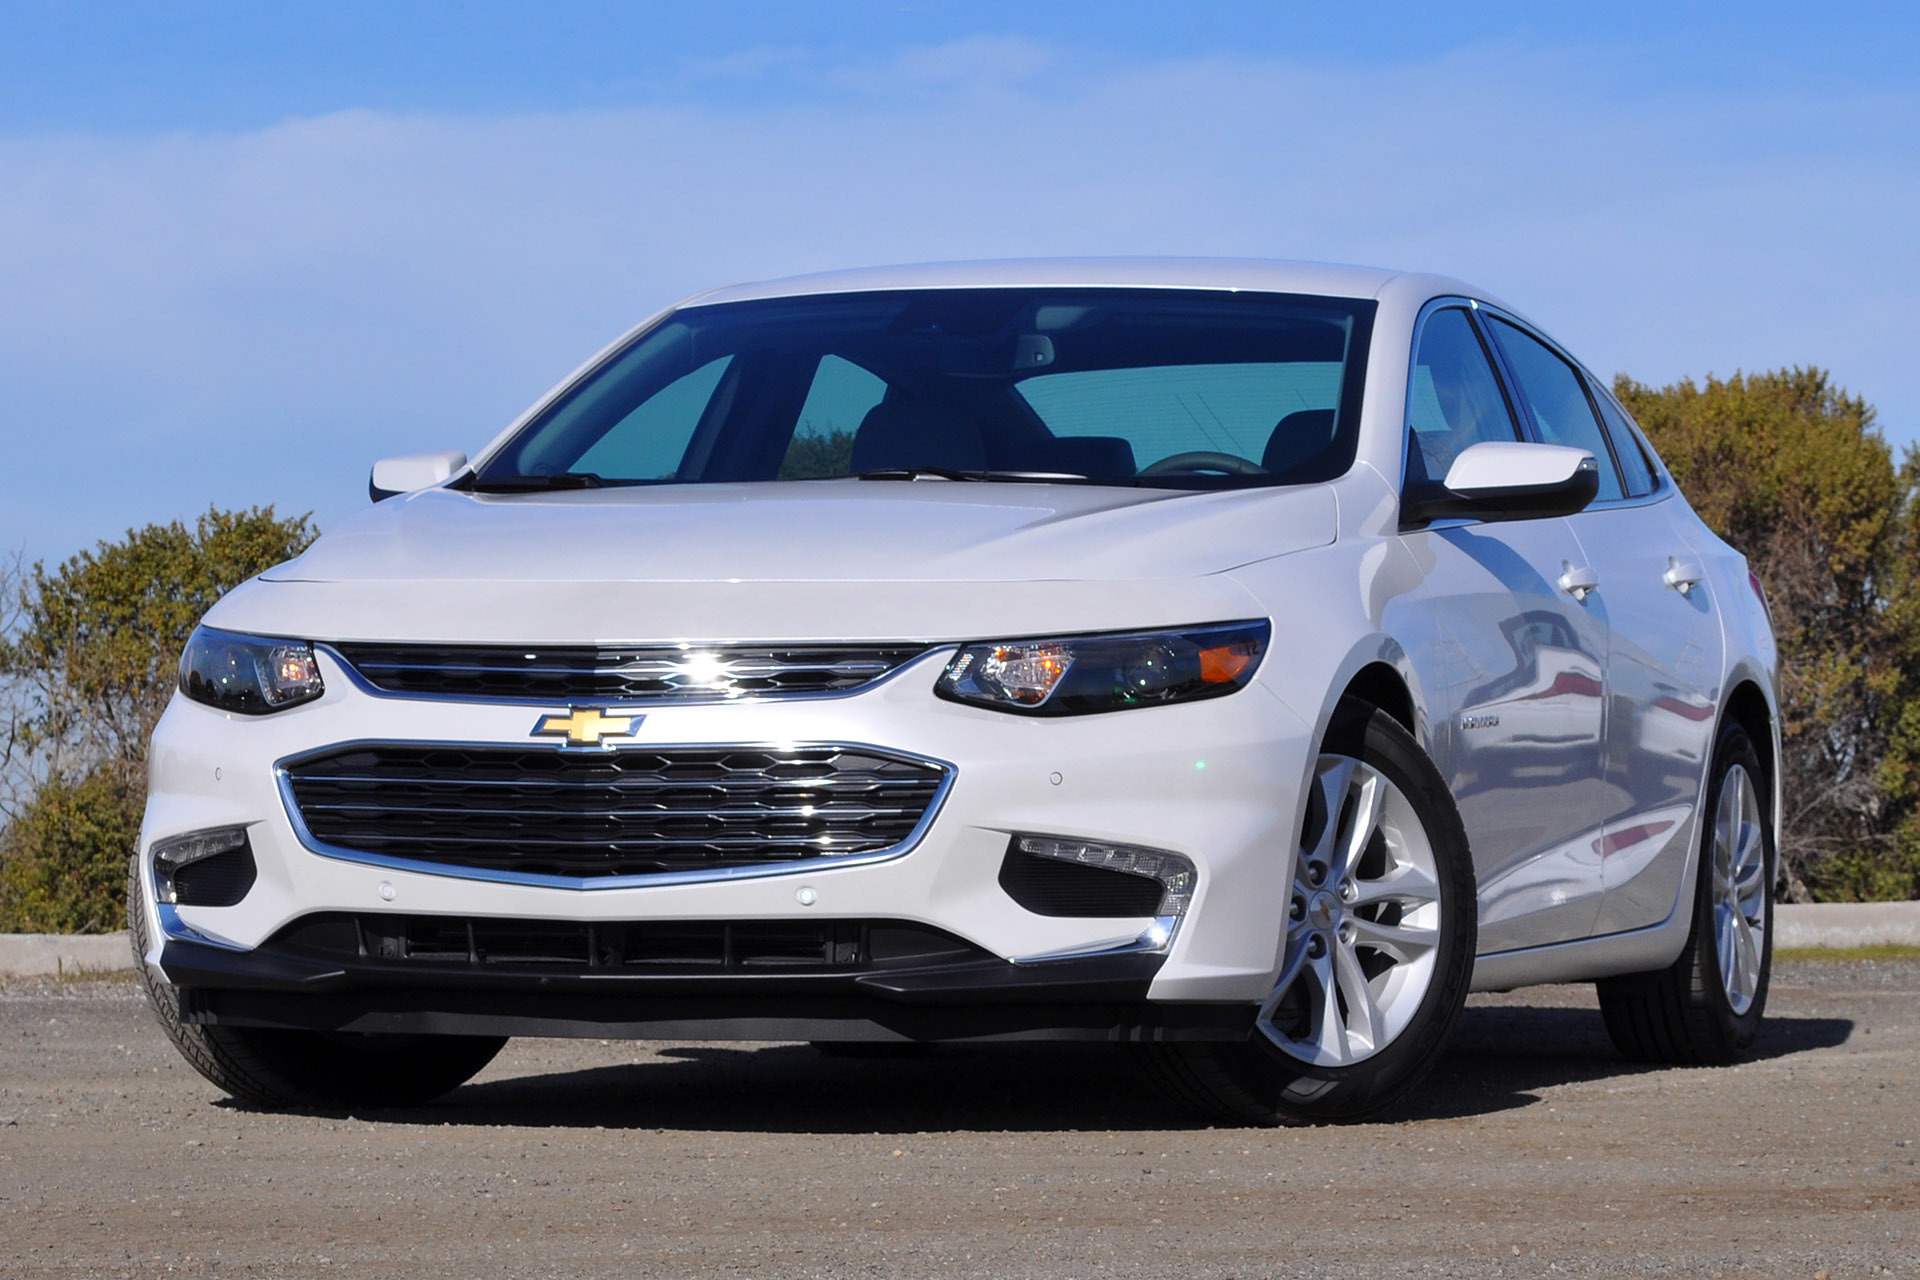 2016 Chevrolet Malibu Powered By ONE 1.8 Liter Engine And TWO Electric Motors 6